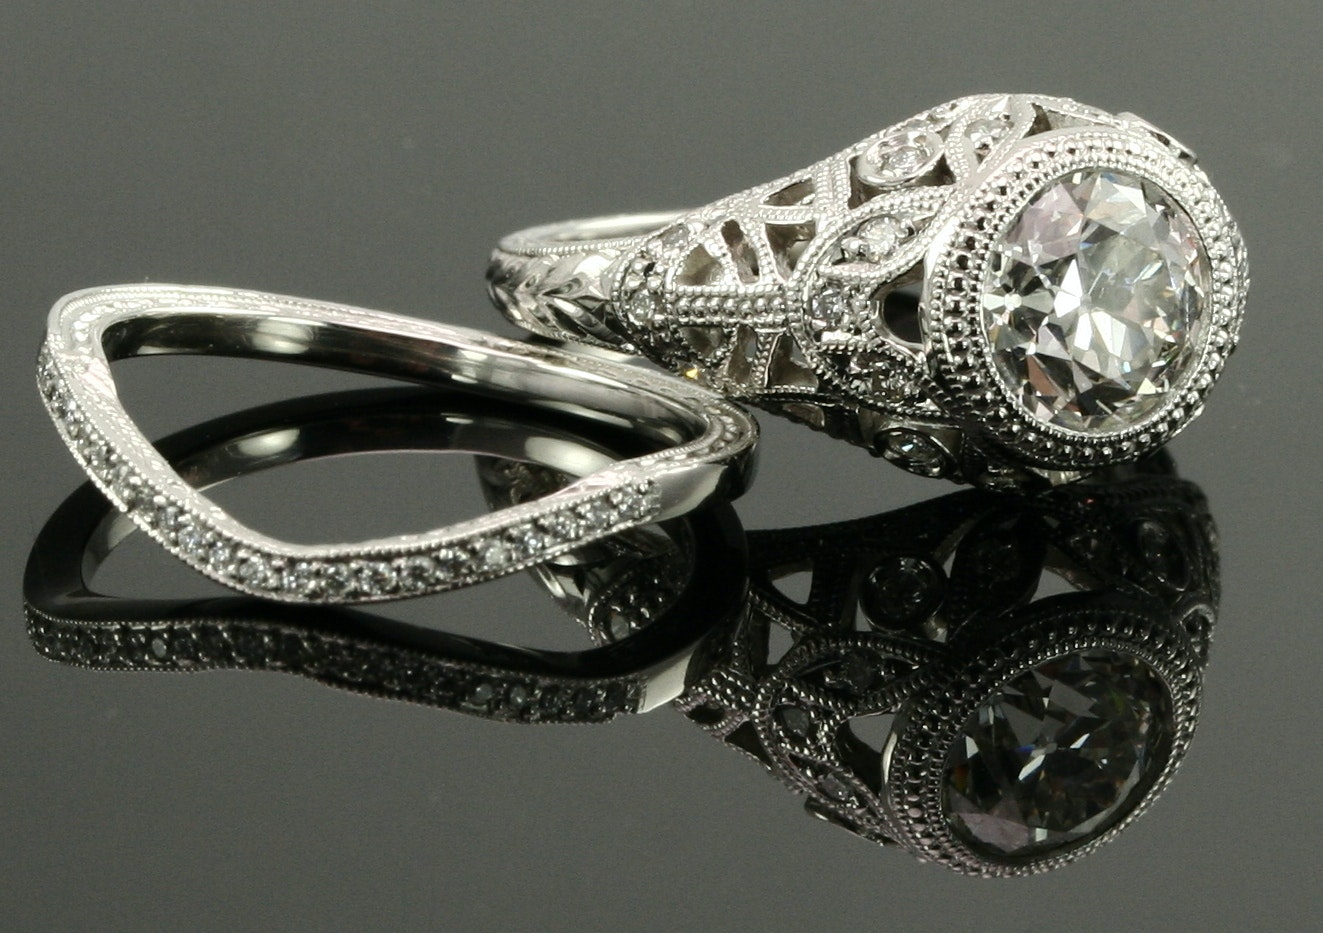 Buying an Antique or Vintage Engagement Ring Online Main Image